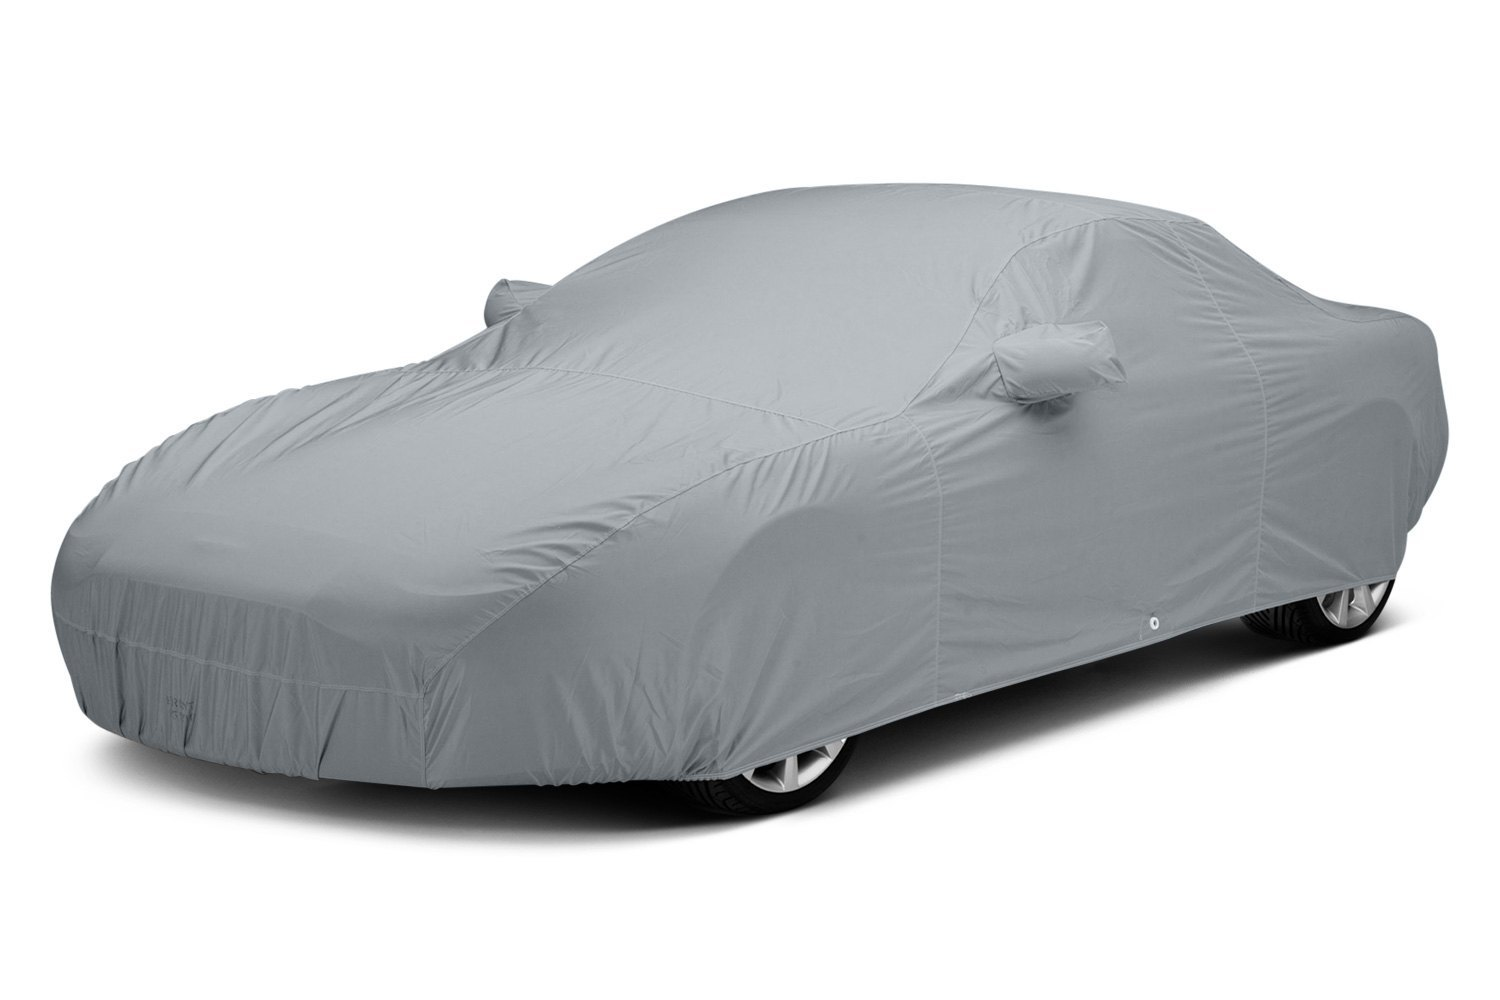 Black FS11148F5 Covercraft Custom Fit Car Cover for Select Packard 120 C Models Fleeced Satin